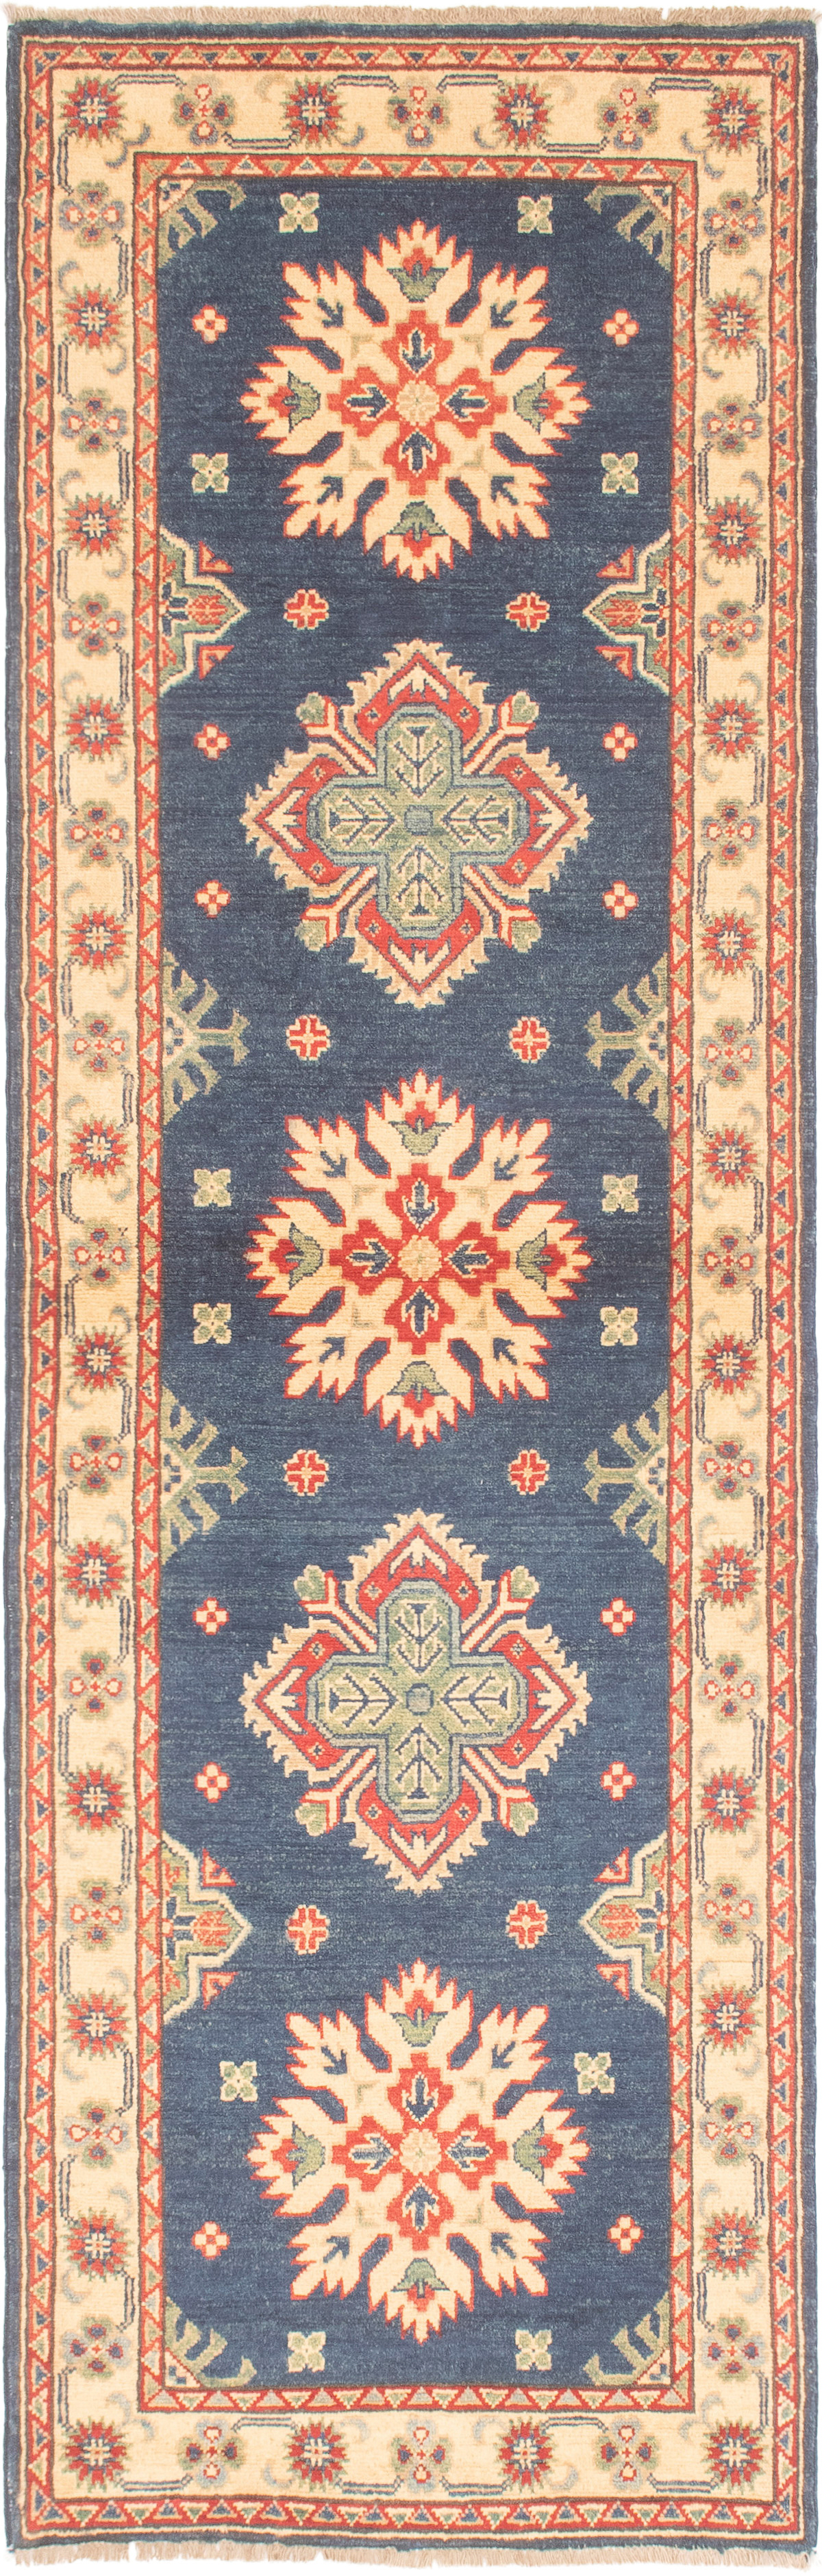 """Hand-knotted Finest Gazni Navy Blue Wool Rug 2'9"""" x 9'3"""" Size: 2'9"""" x 9'3"""""""